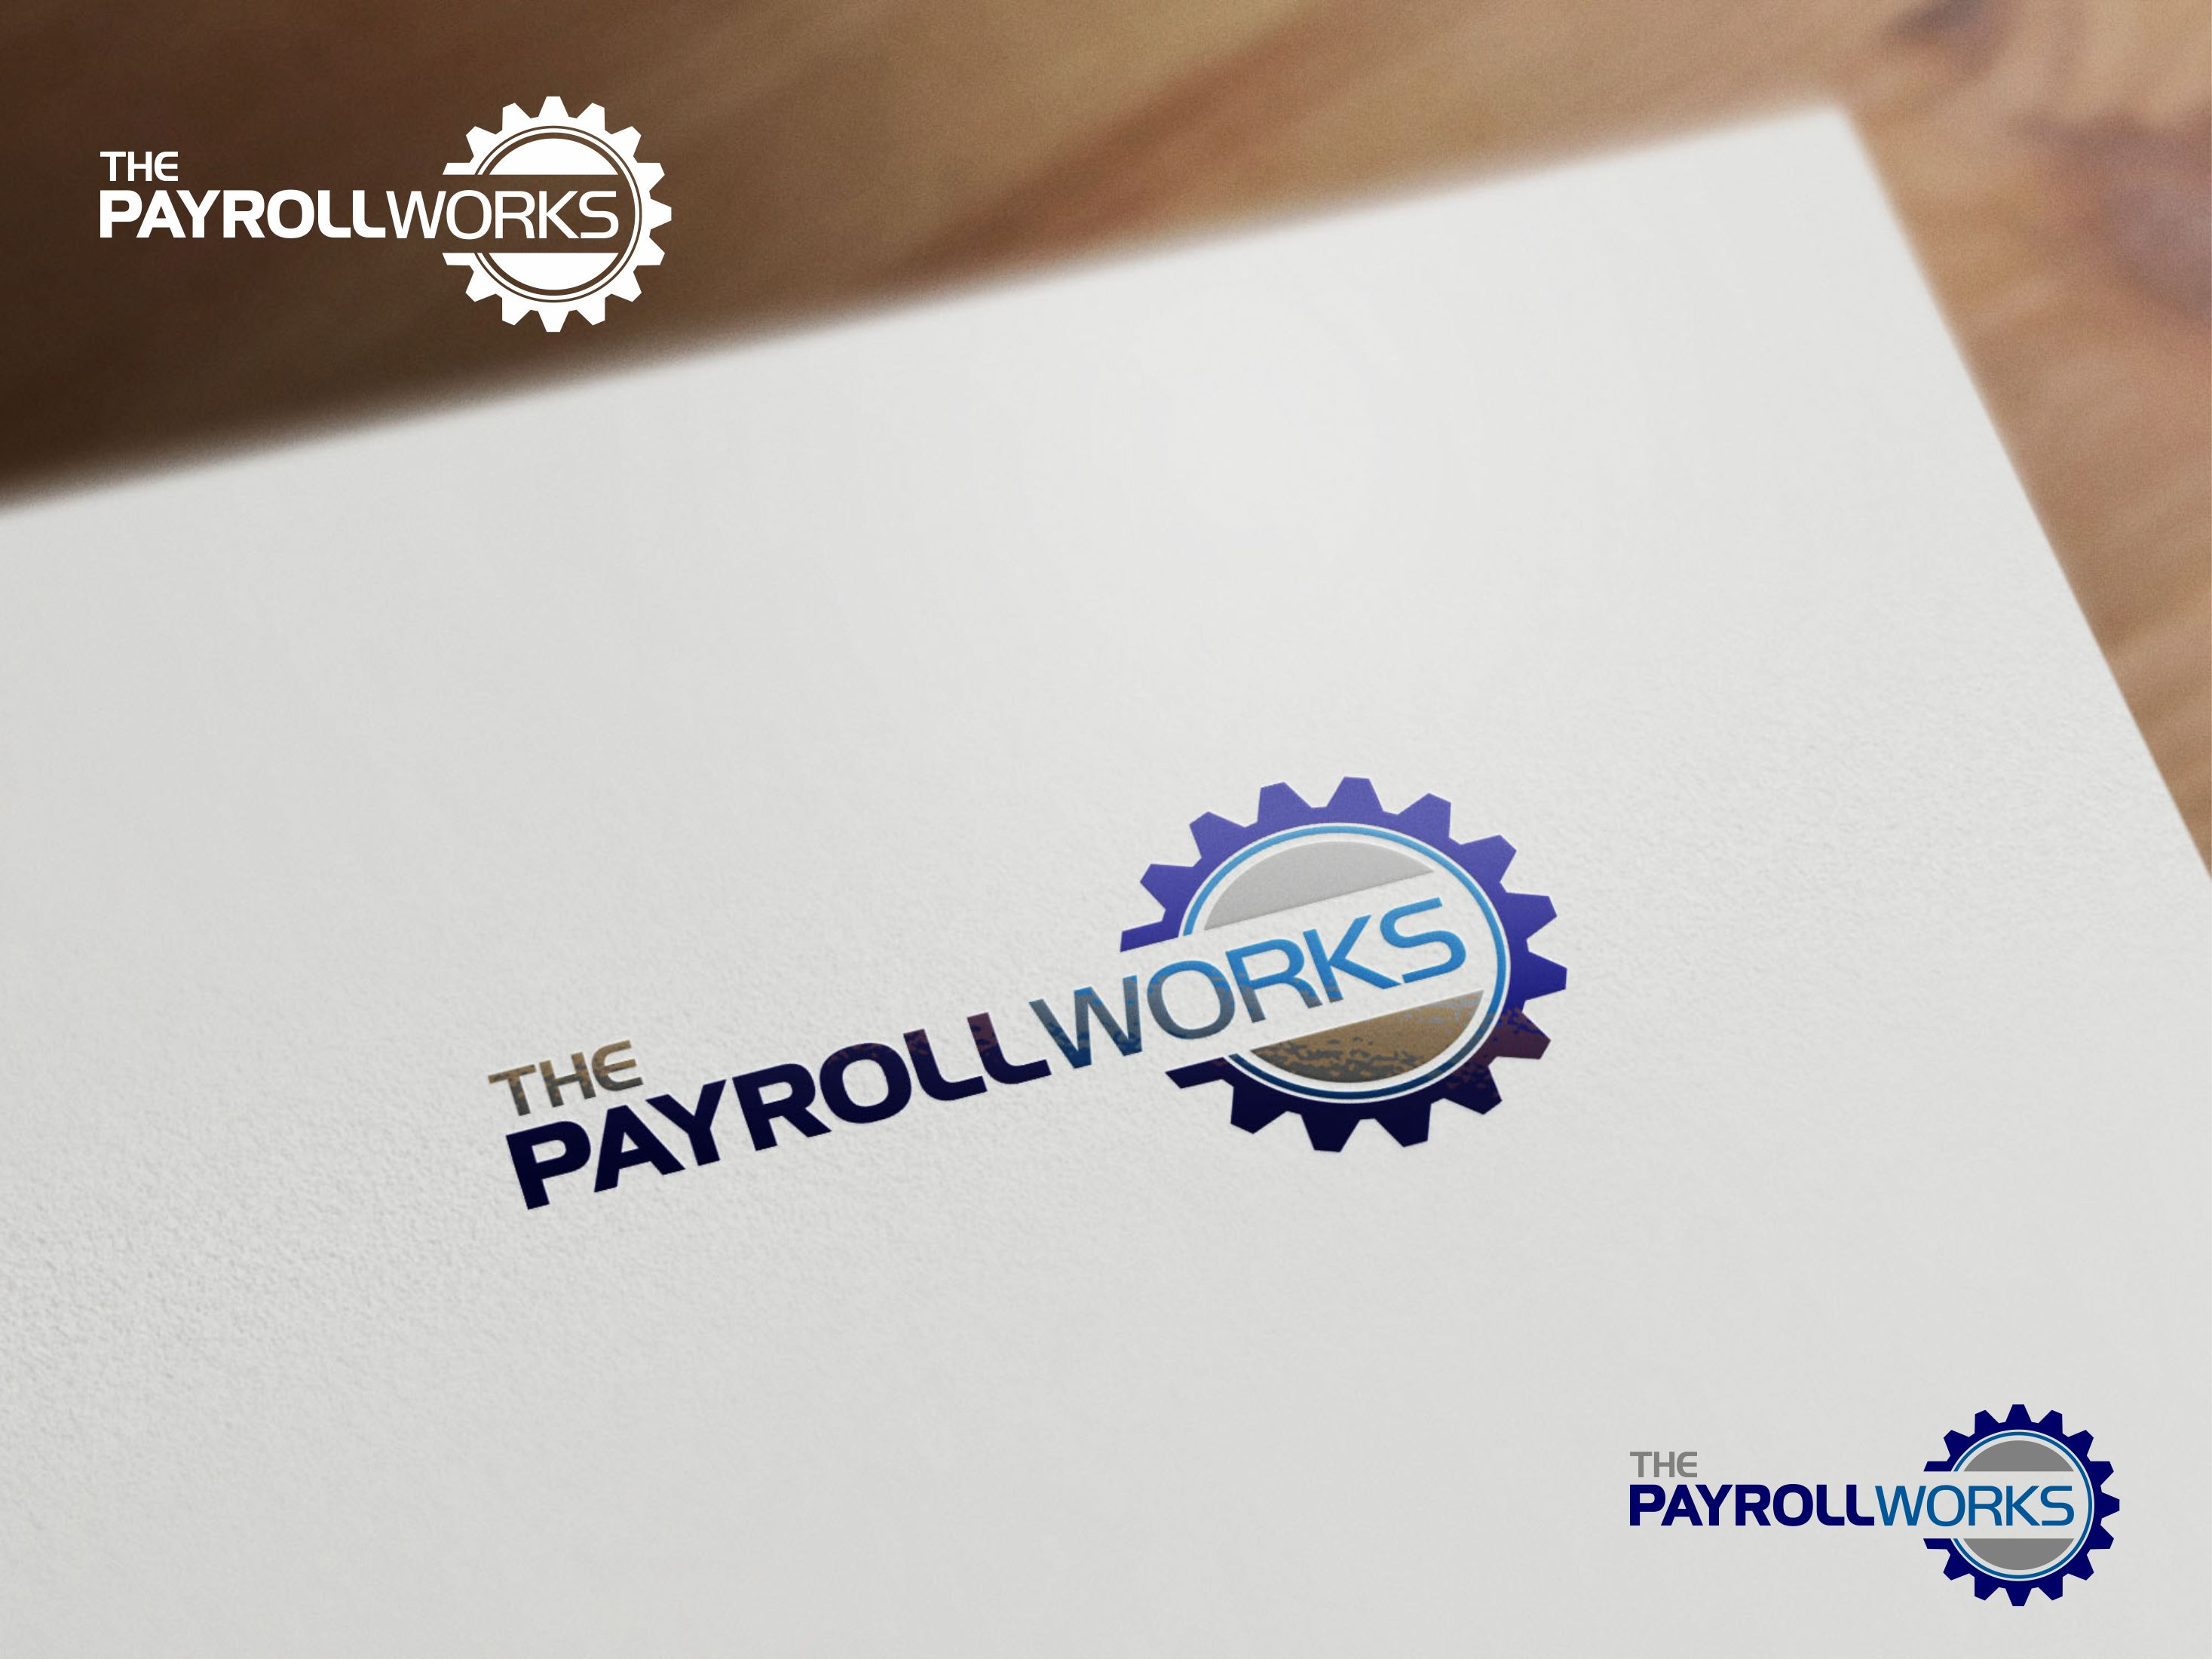 Logo Design by Raymond Garcia - Entry No. 53 in the Logo Design Contest Captivating Logo Design for The Payroll Works.